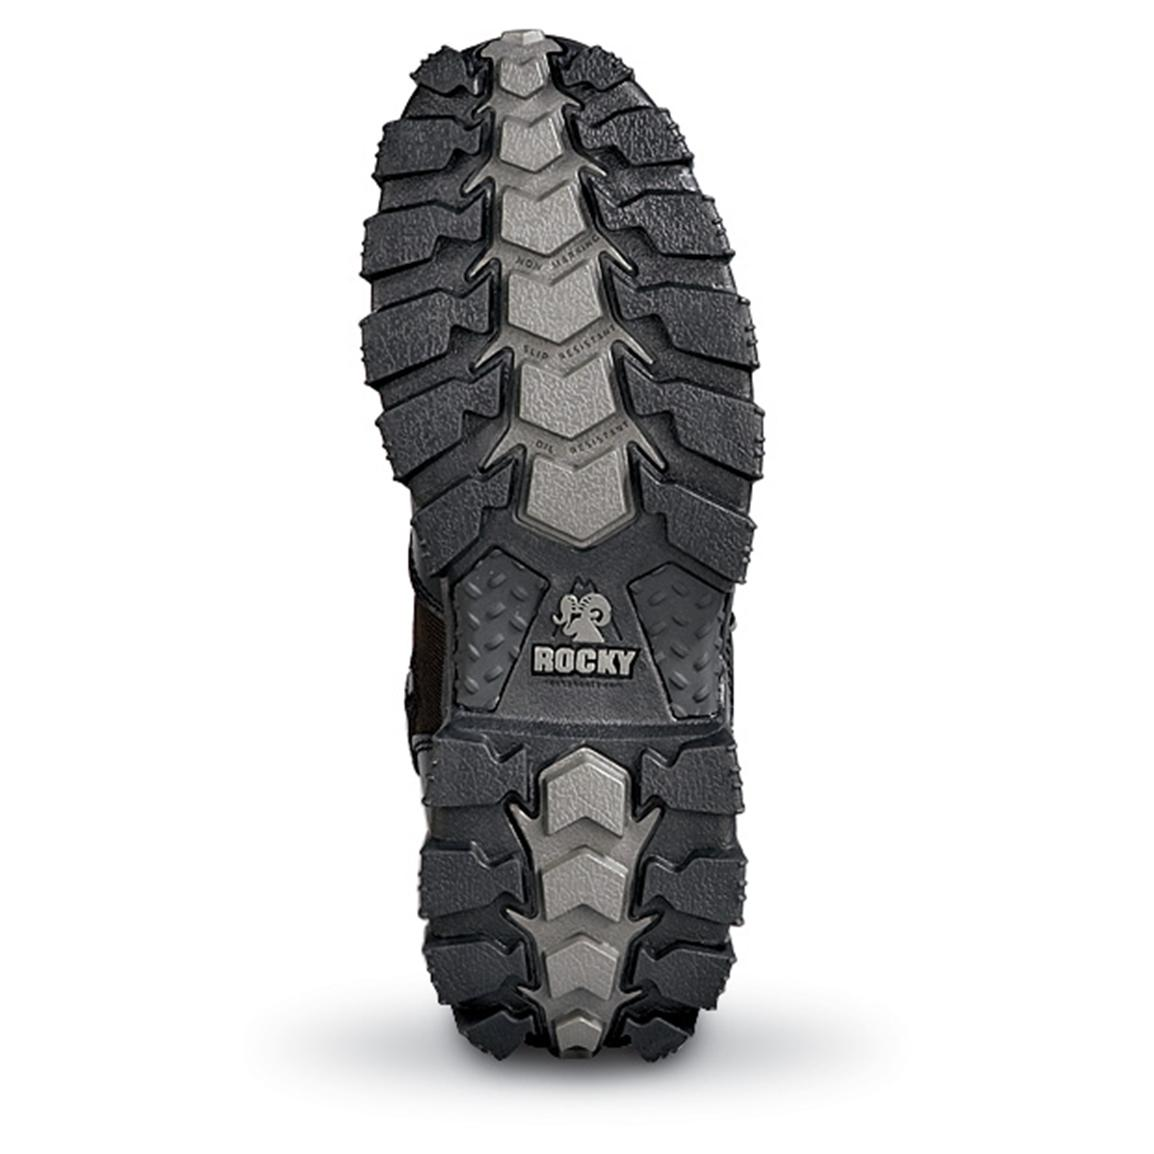 Oil-resistant and non-marking rubber outsole delivers superior traction